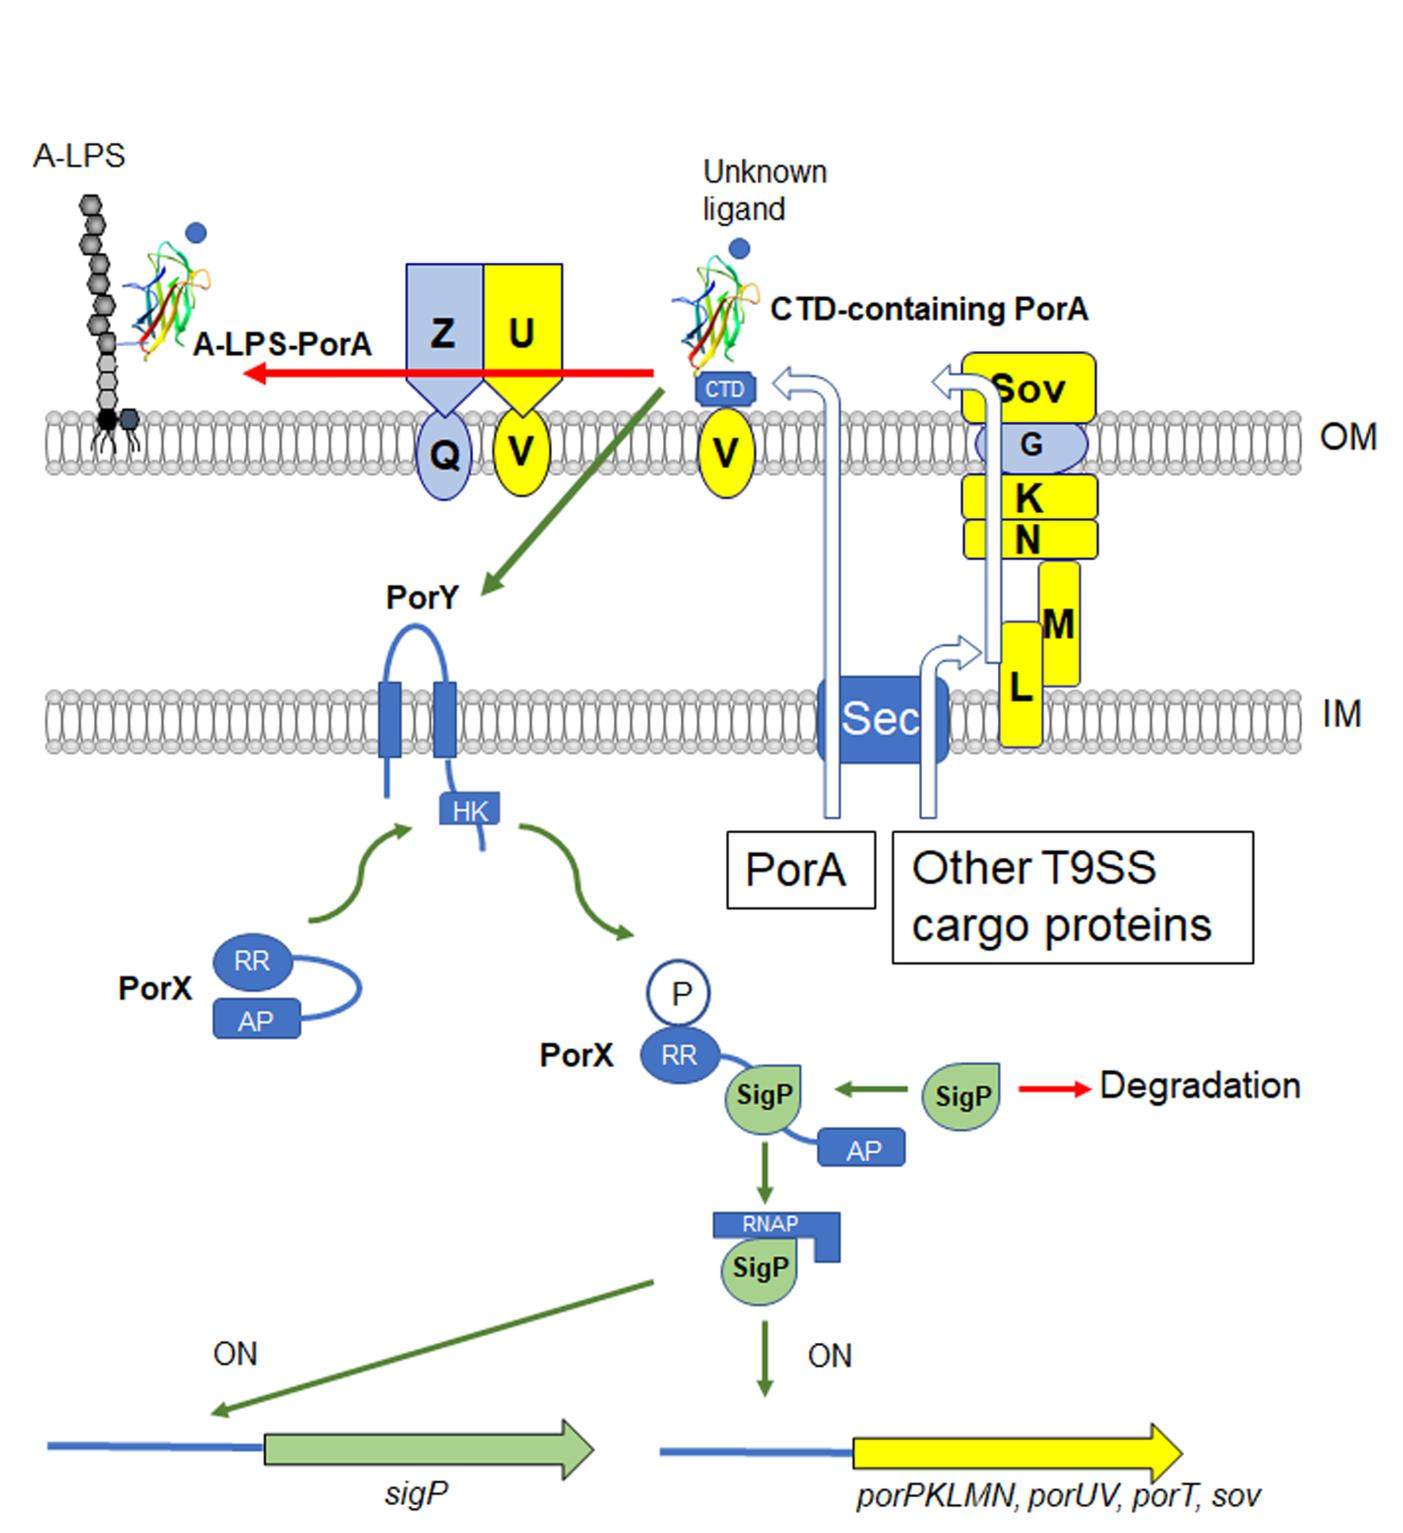 Fig. 1. Proposed model of regulation of the T9SS gene expression in P. gingivalis.